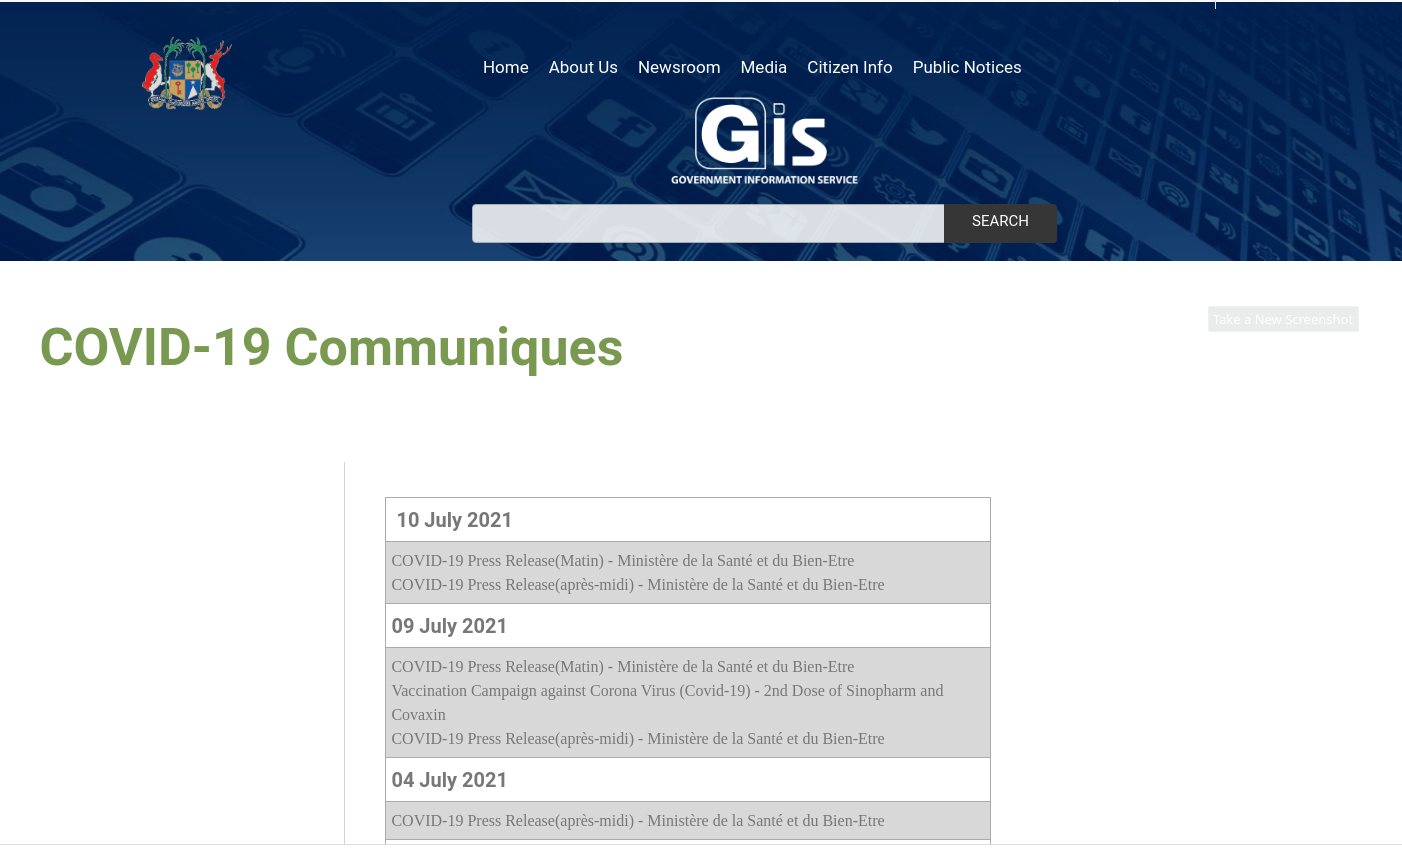 Website of the Government Information Service